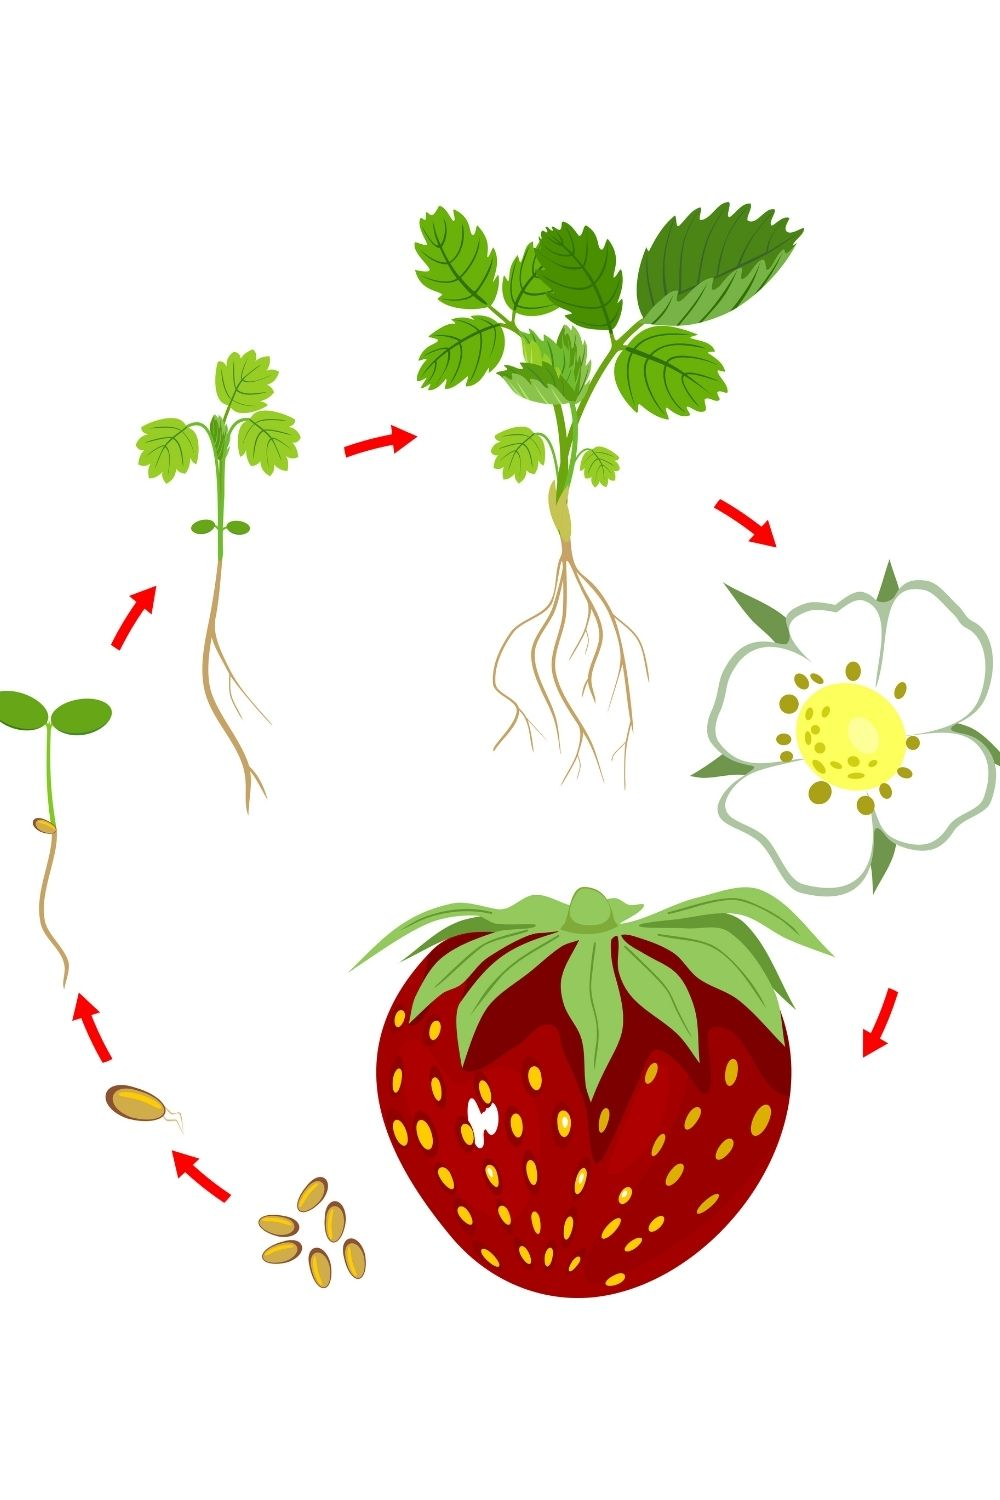 an illustration of the growth cycle of the strawberry plant